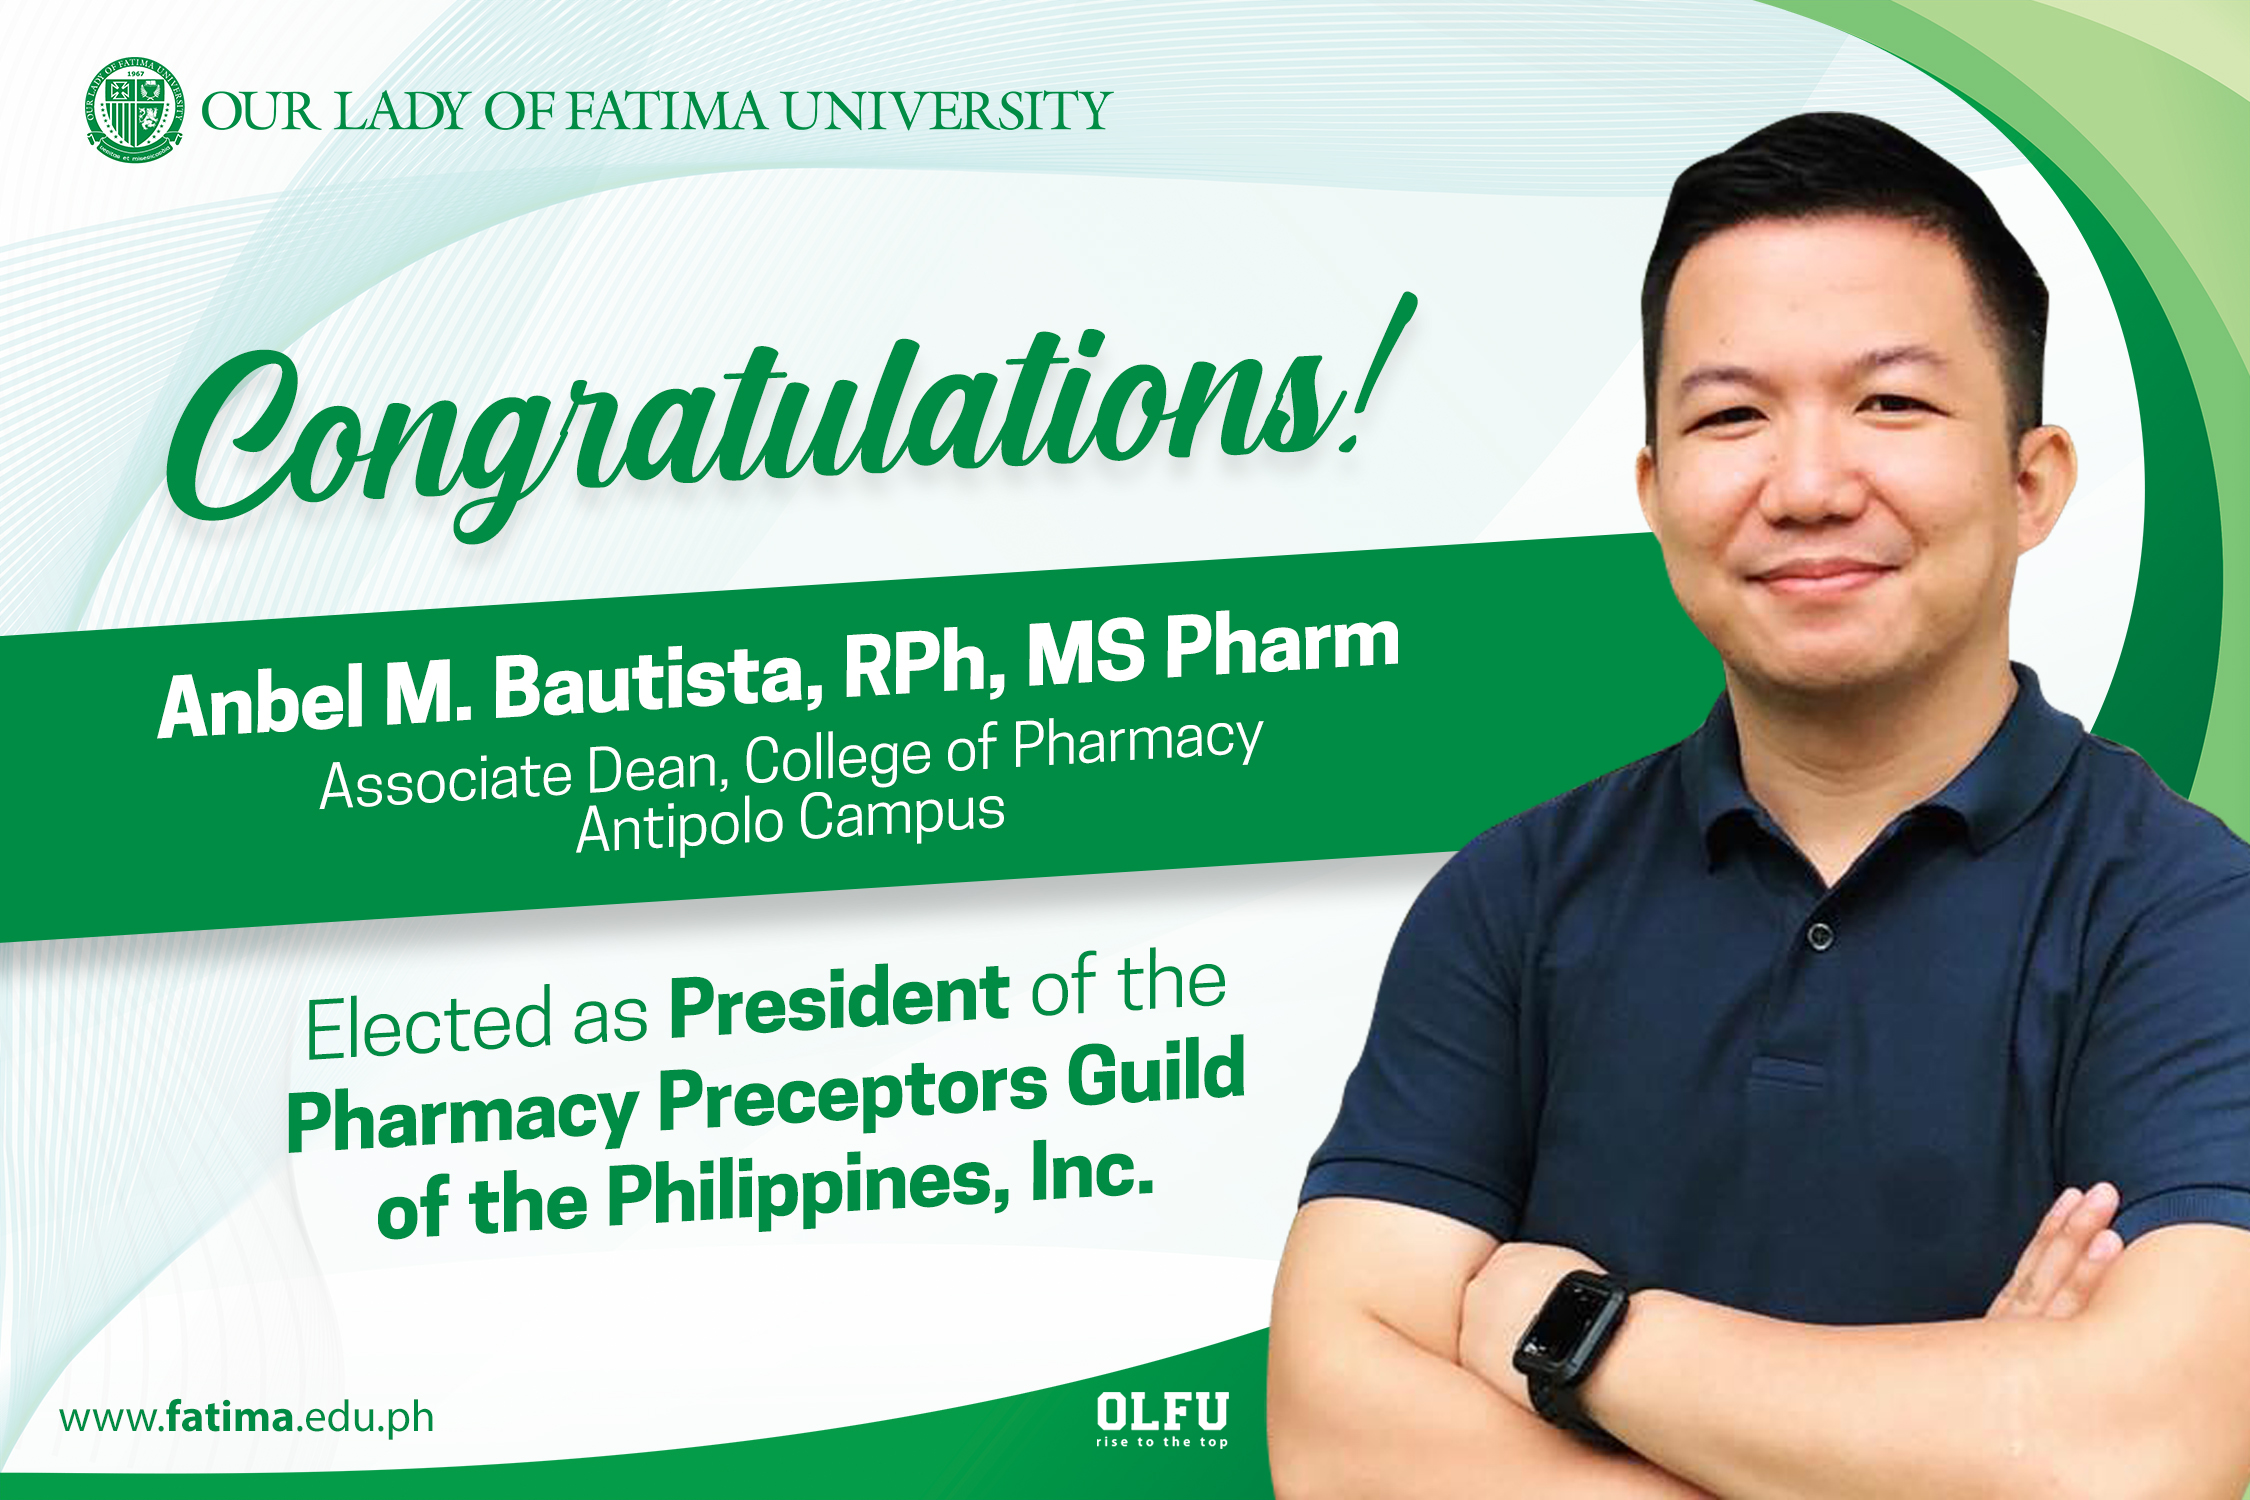 College of Pharmacy's Anbel Bautista, elected as President of PH Pharmacy Preceptors Guild